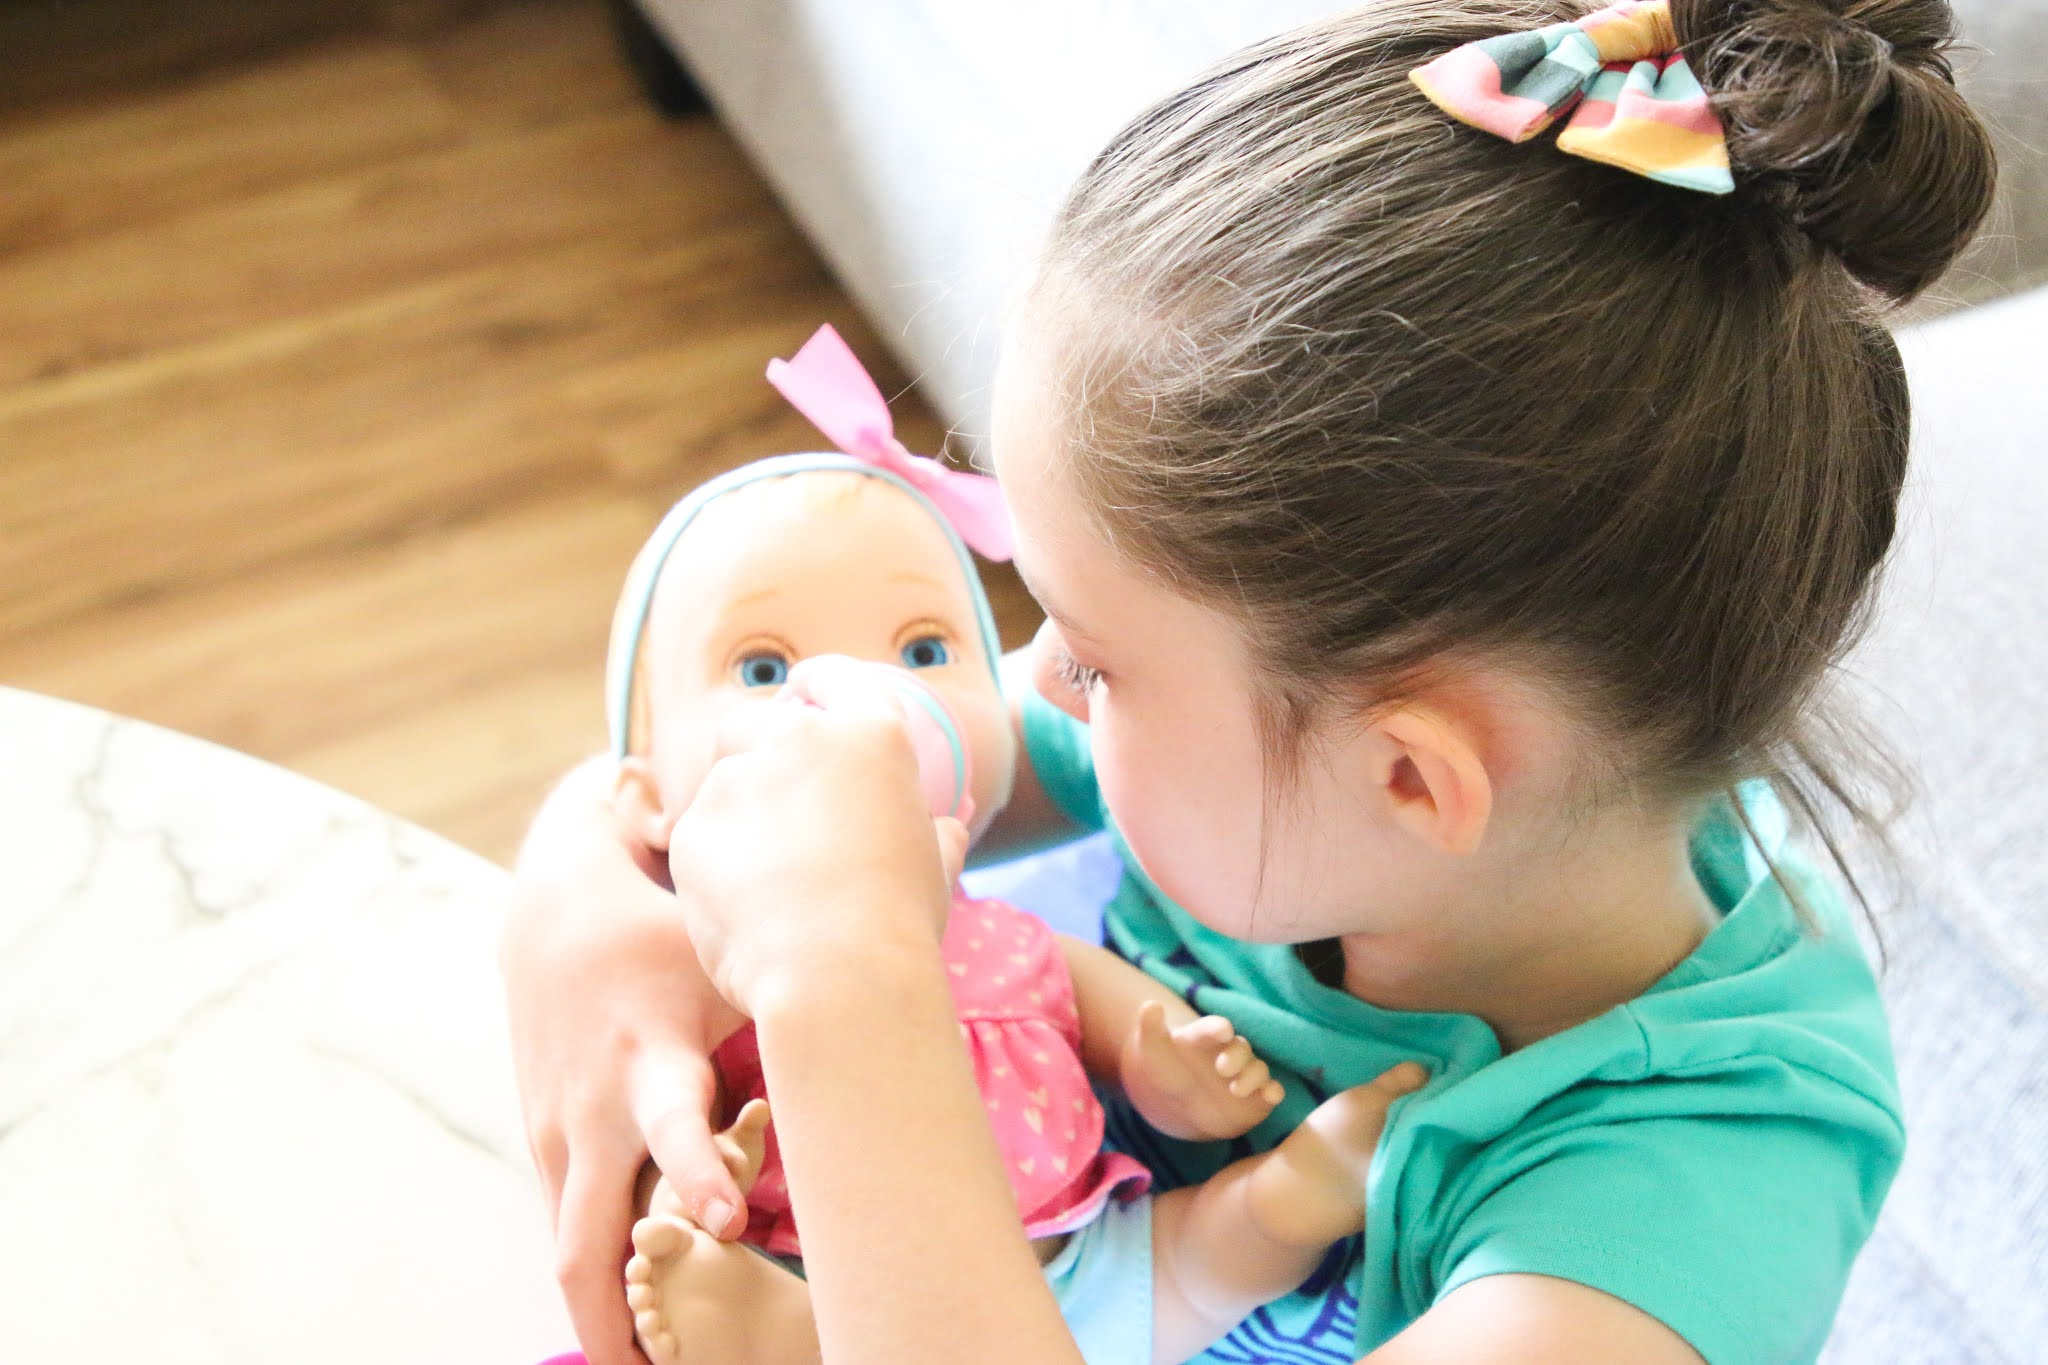 The best realistic baby doll. Realistic interactive baby dolls. Interactive baby dolls that cry. Best Baby Doll. Interactive talking doll. #girls #doll #christmas #holiday #gifting